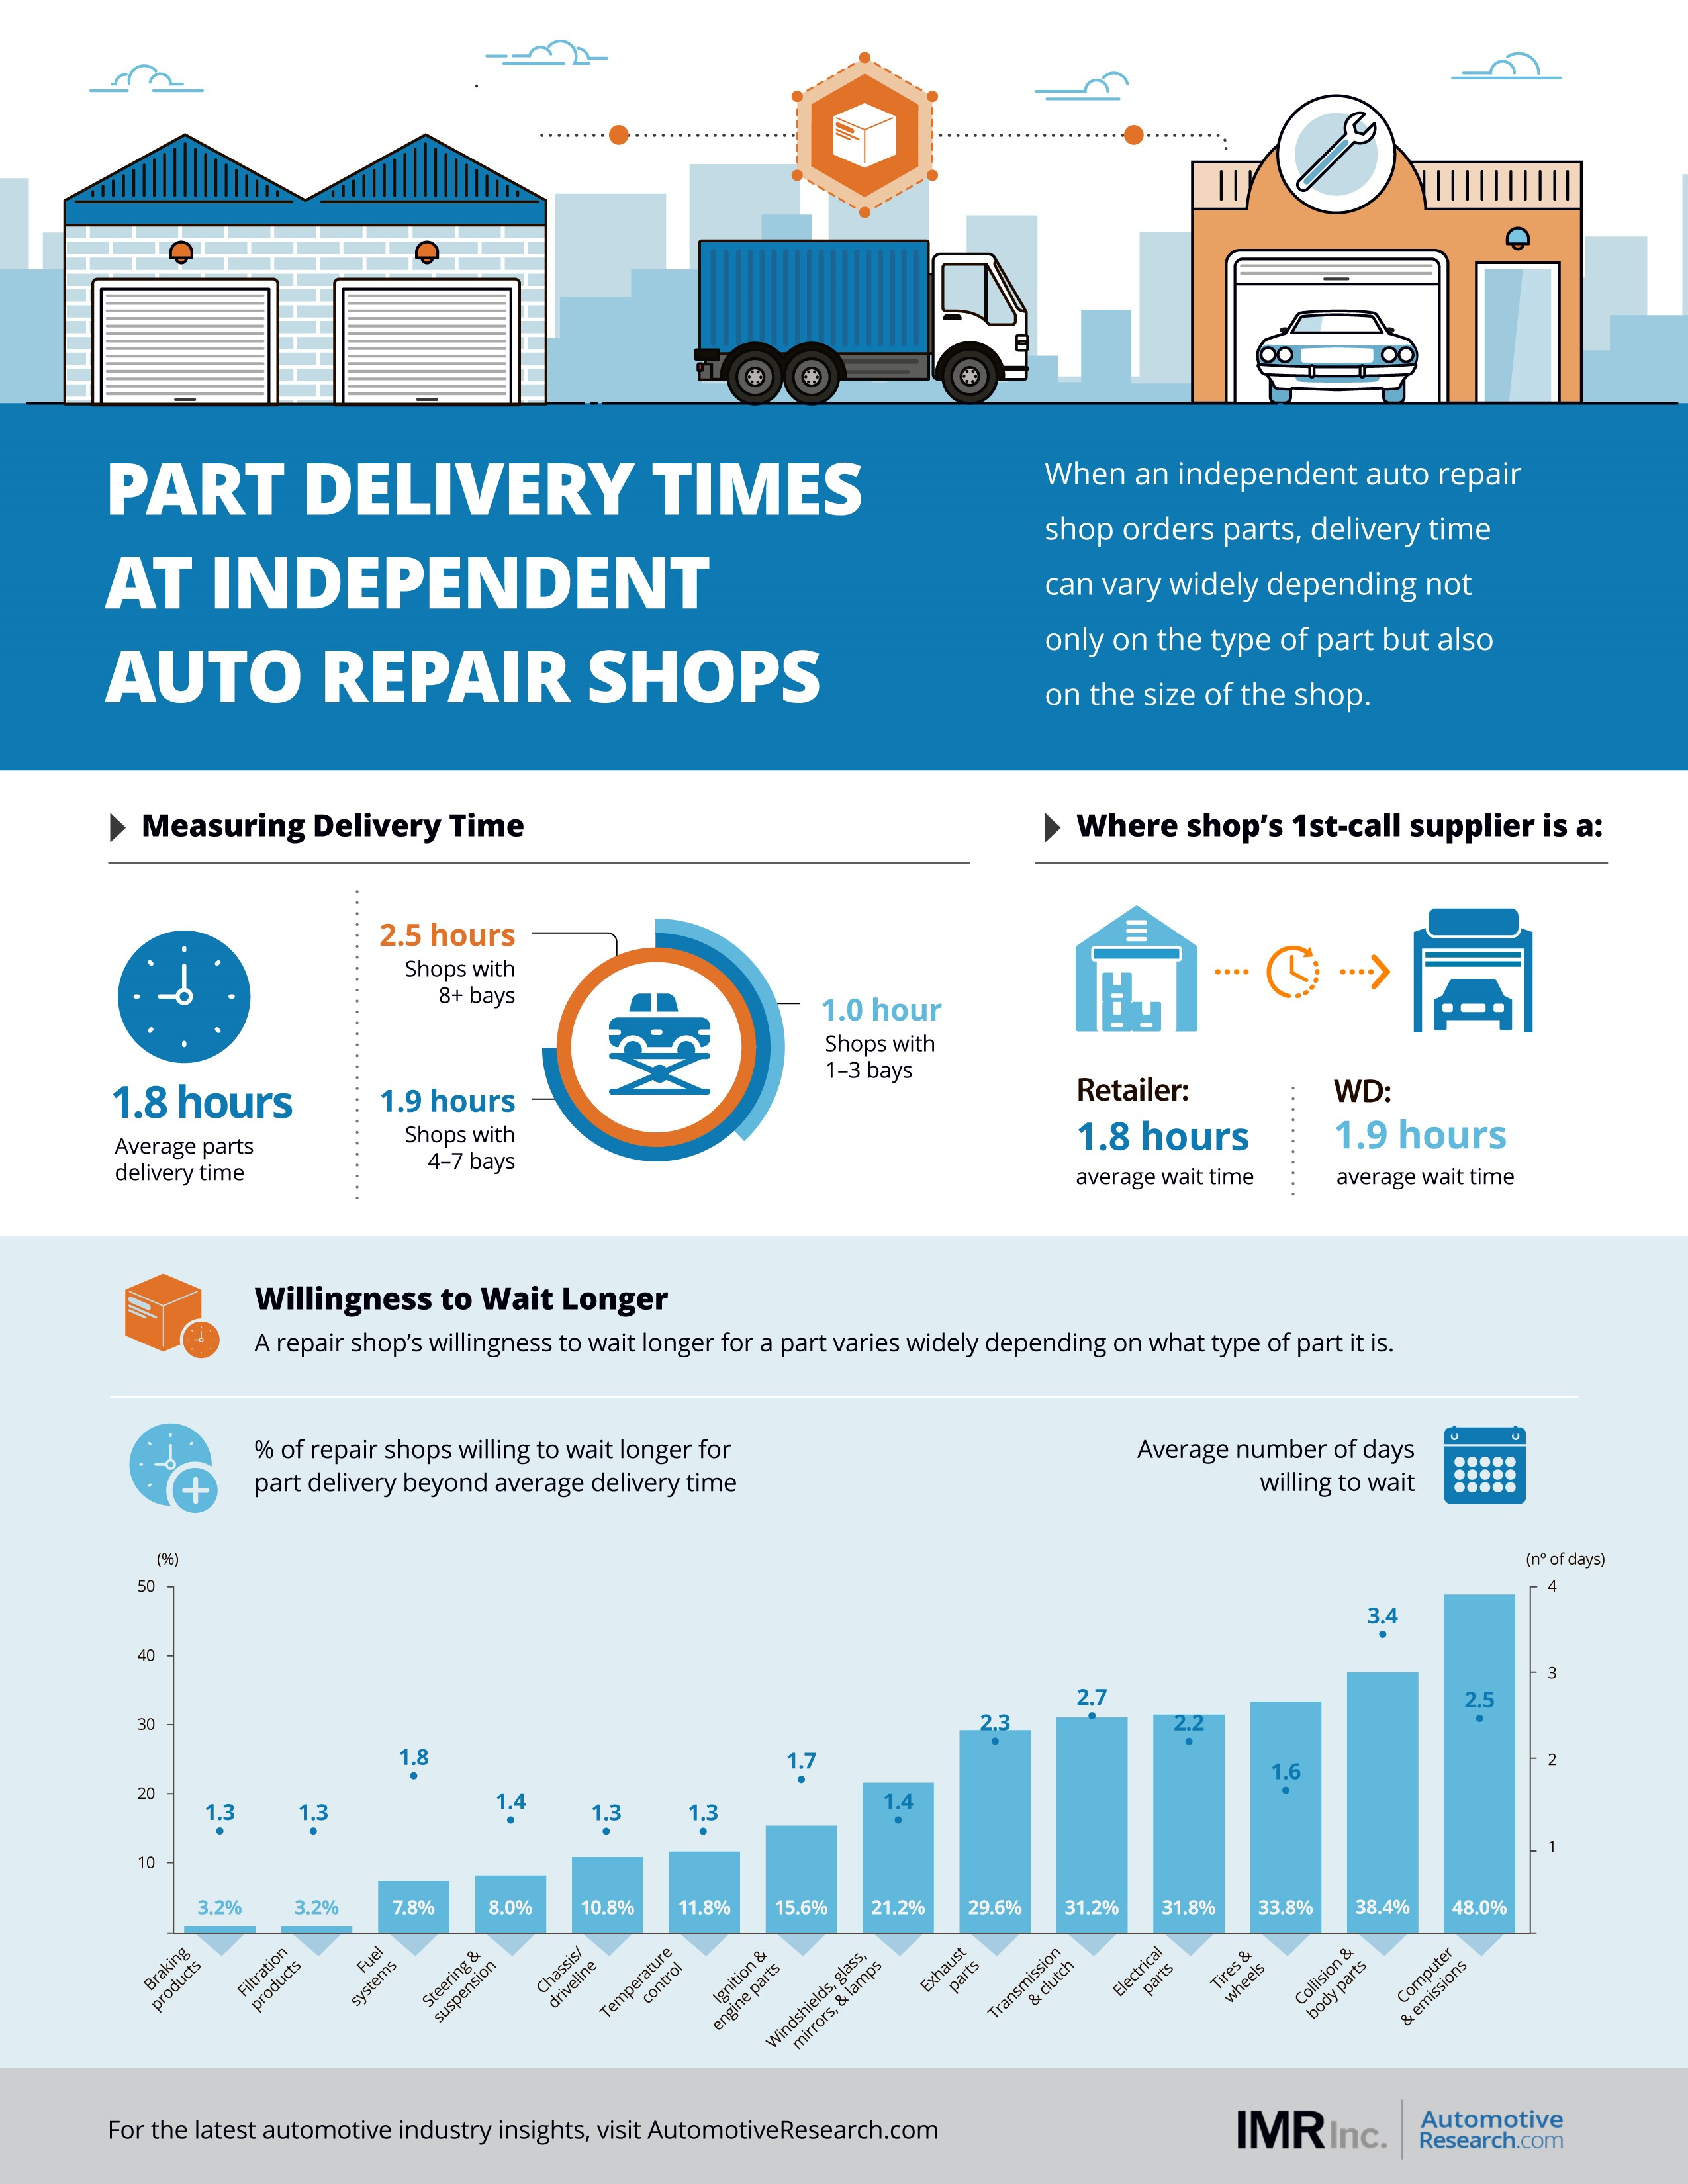 IMR Automotive Market Research Auto Repair Shops Part Delivery Times Infographic